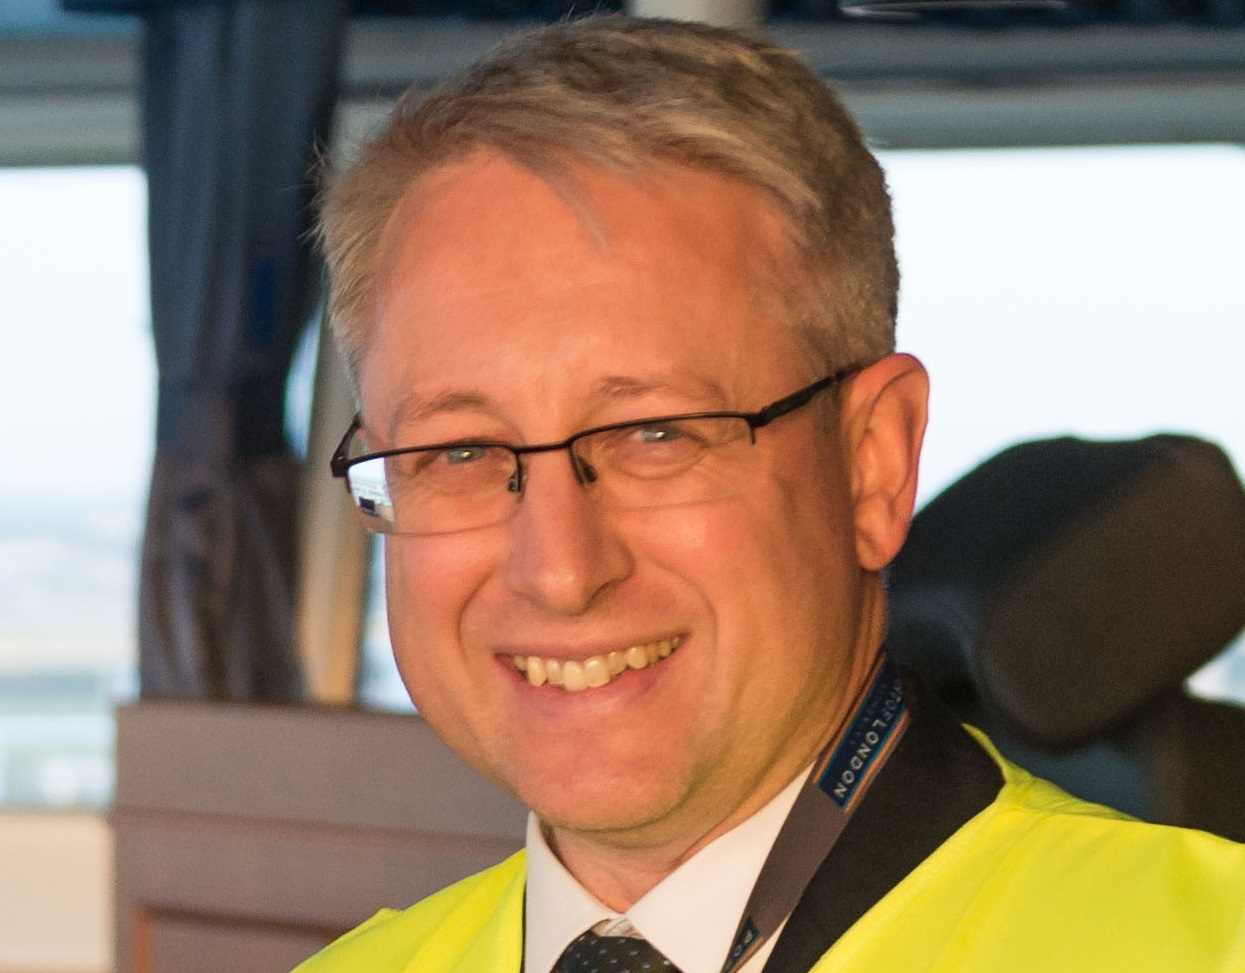 Alistair gale - PLA Head of Corporate Affairs